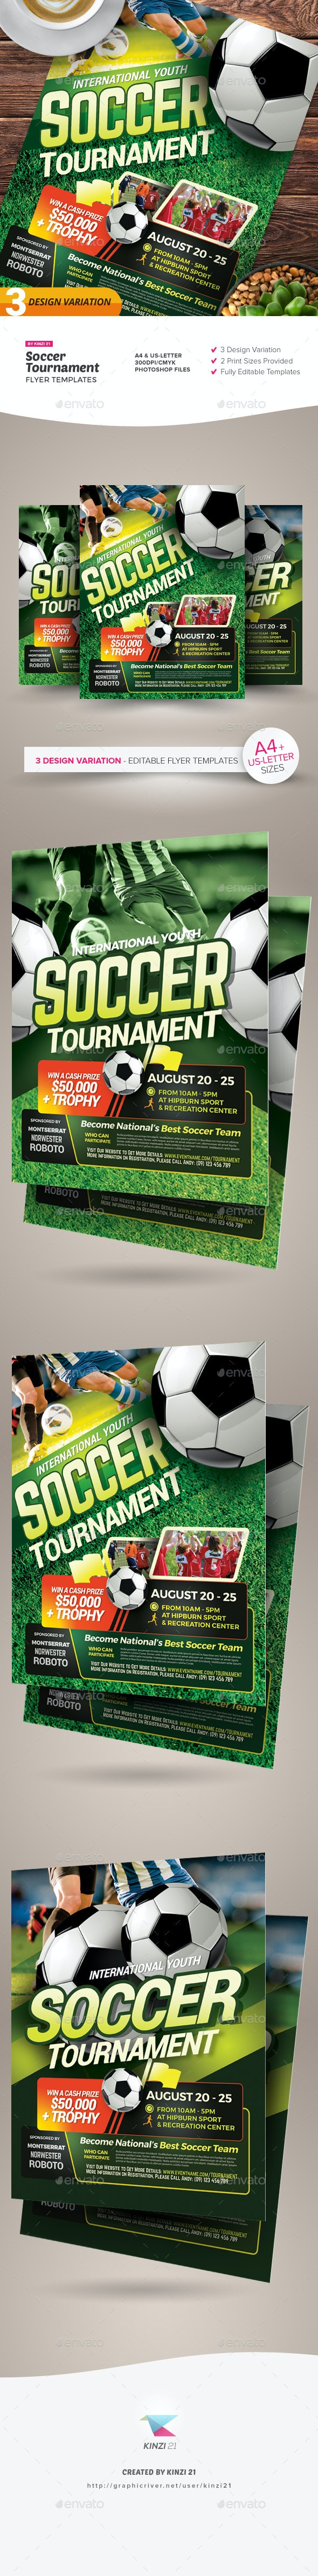 Soccer Tournament Flyer Templates - Sports Events